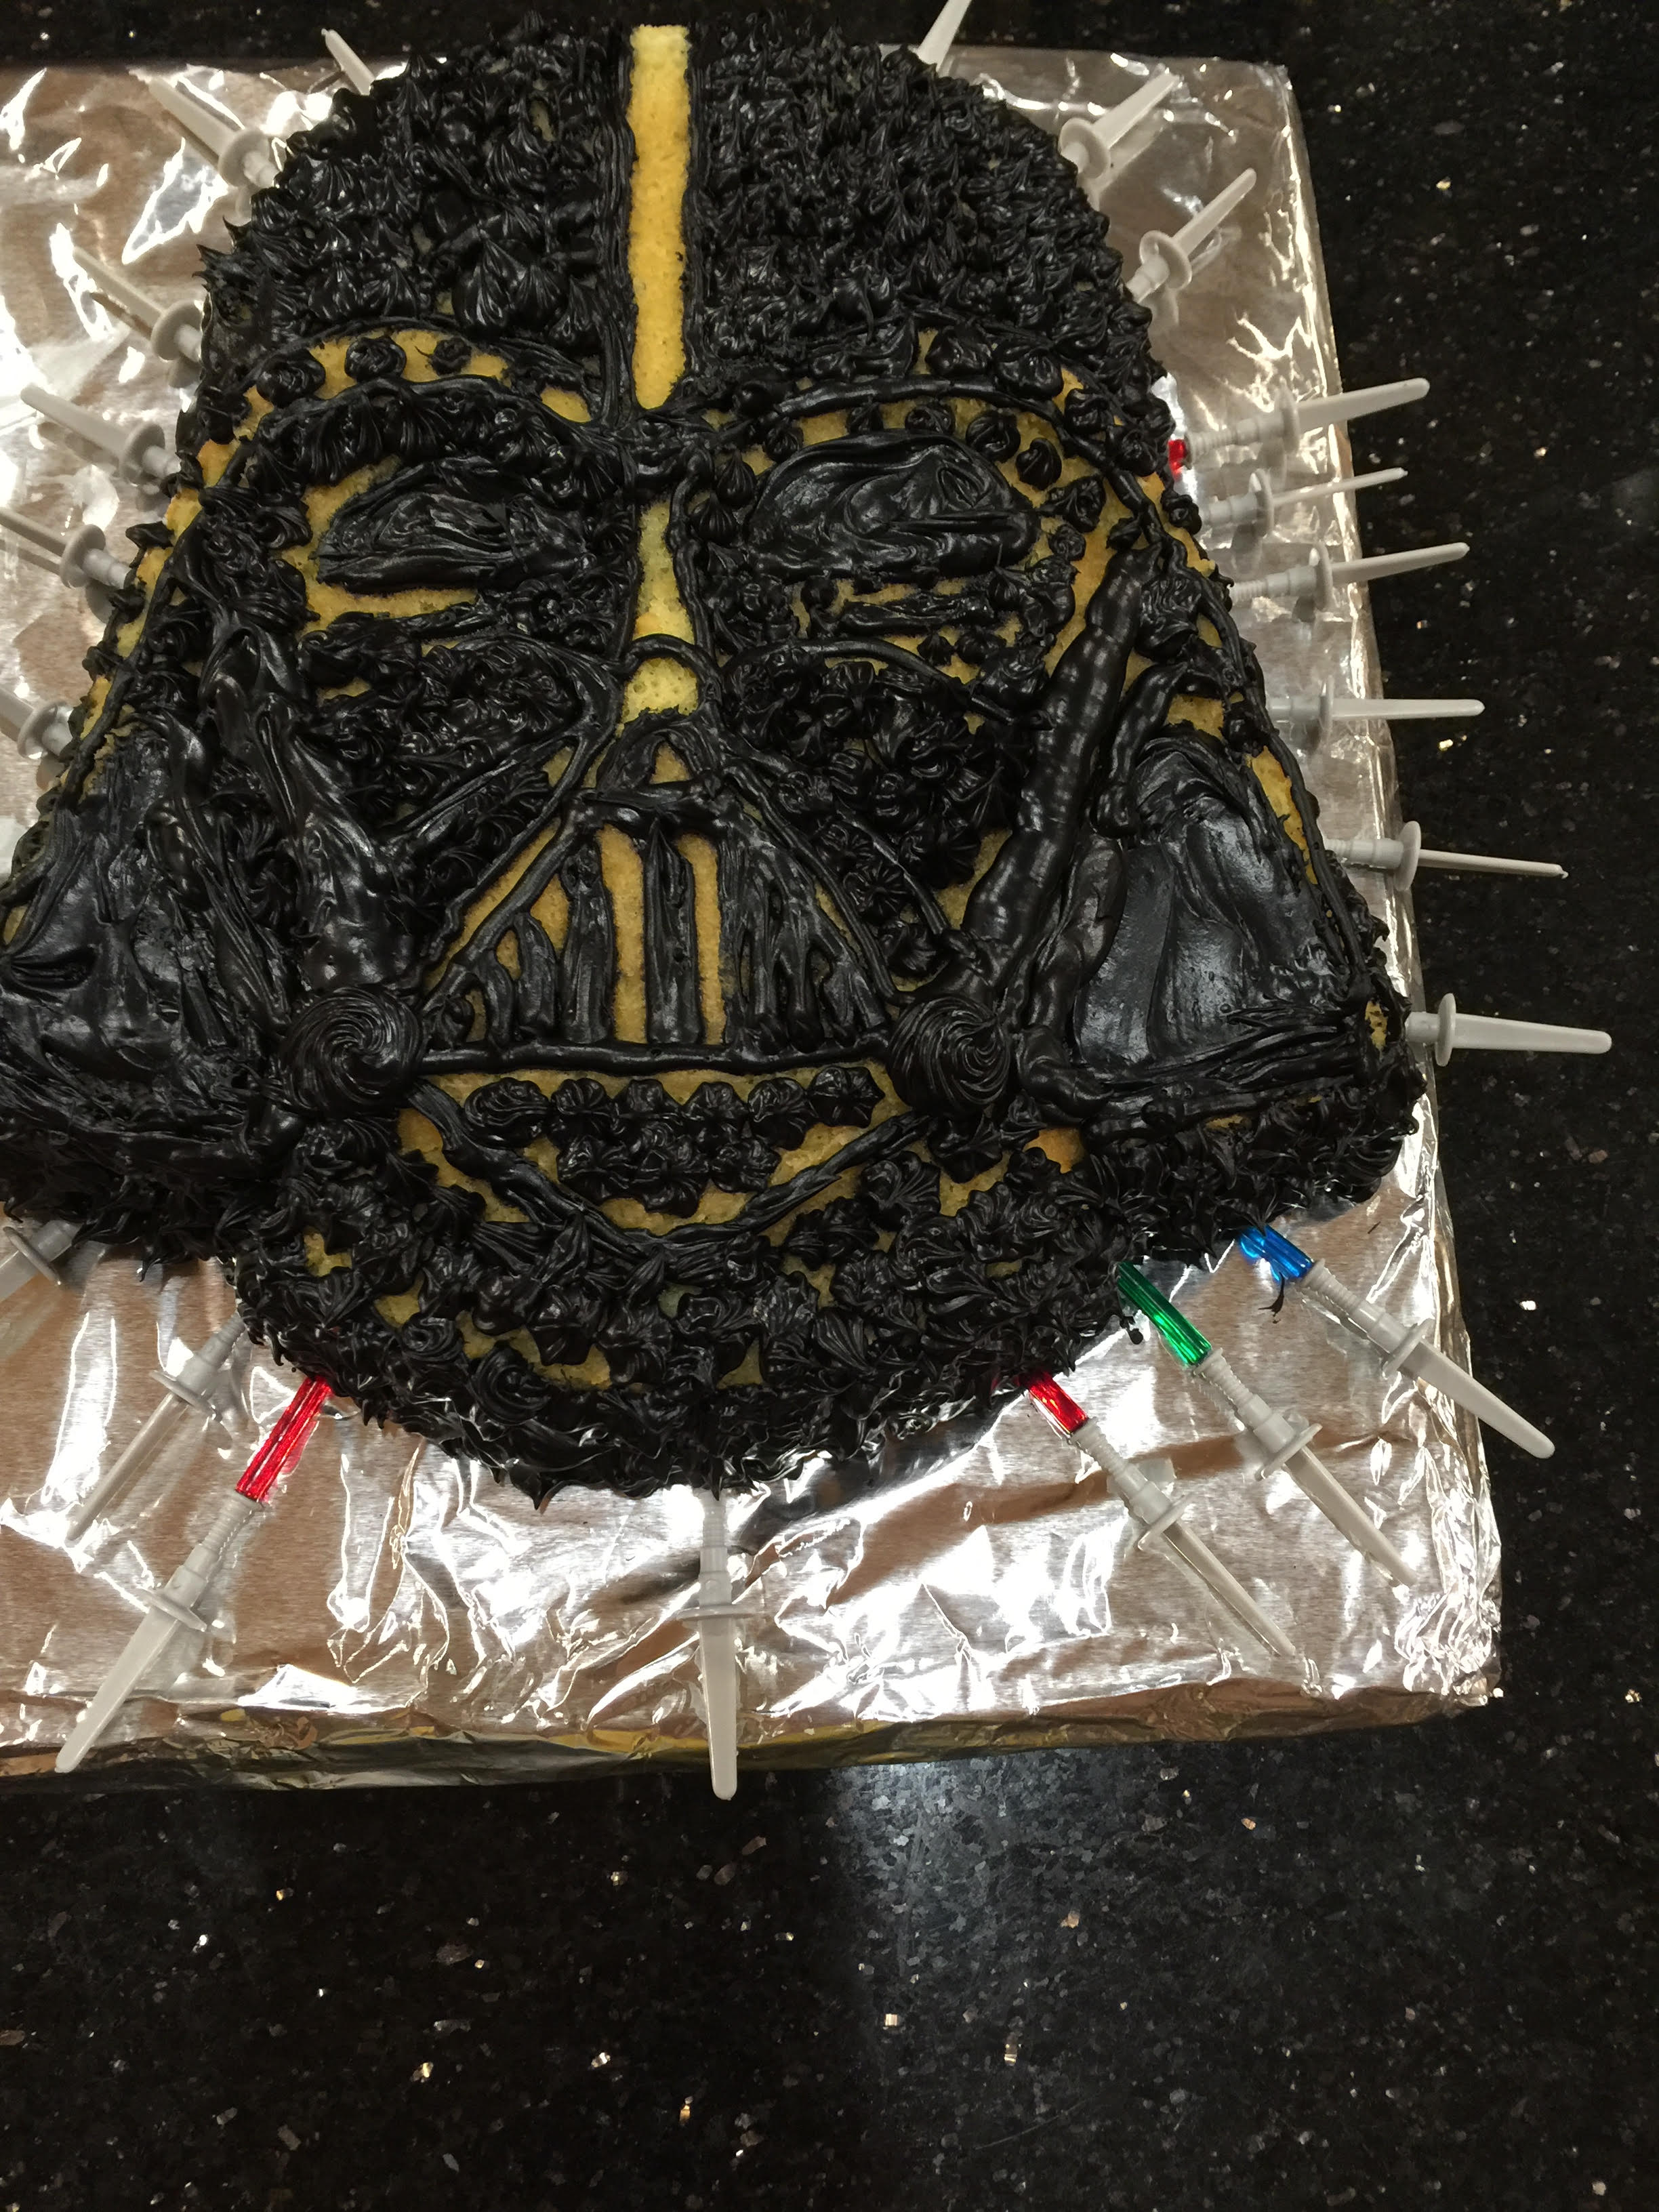 Jacks bday cake Darth Vader with little spears as well as darth vader candles